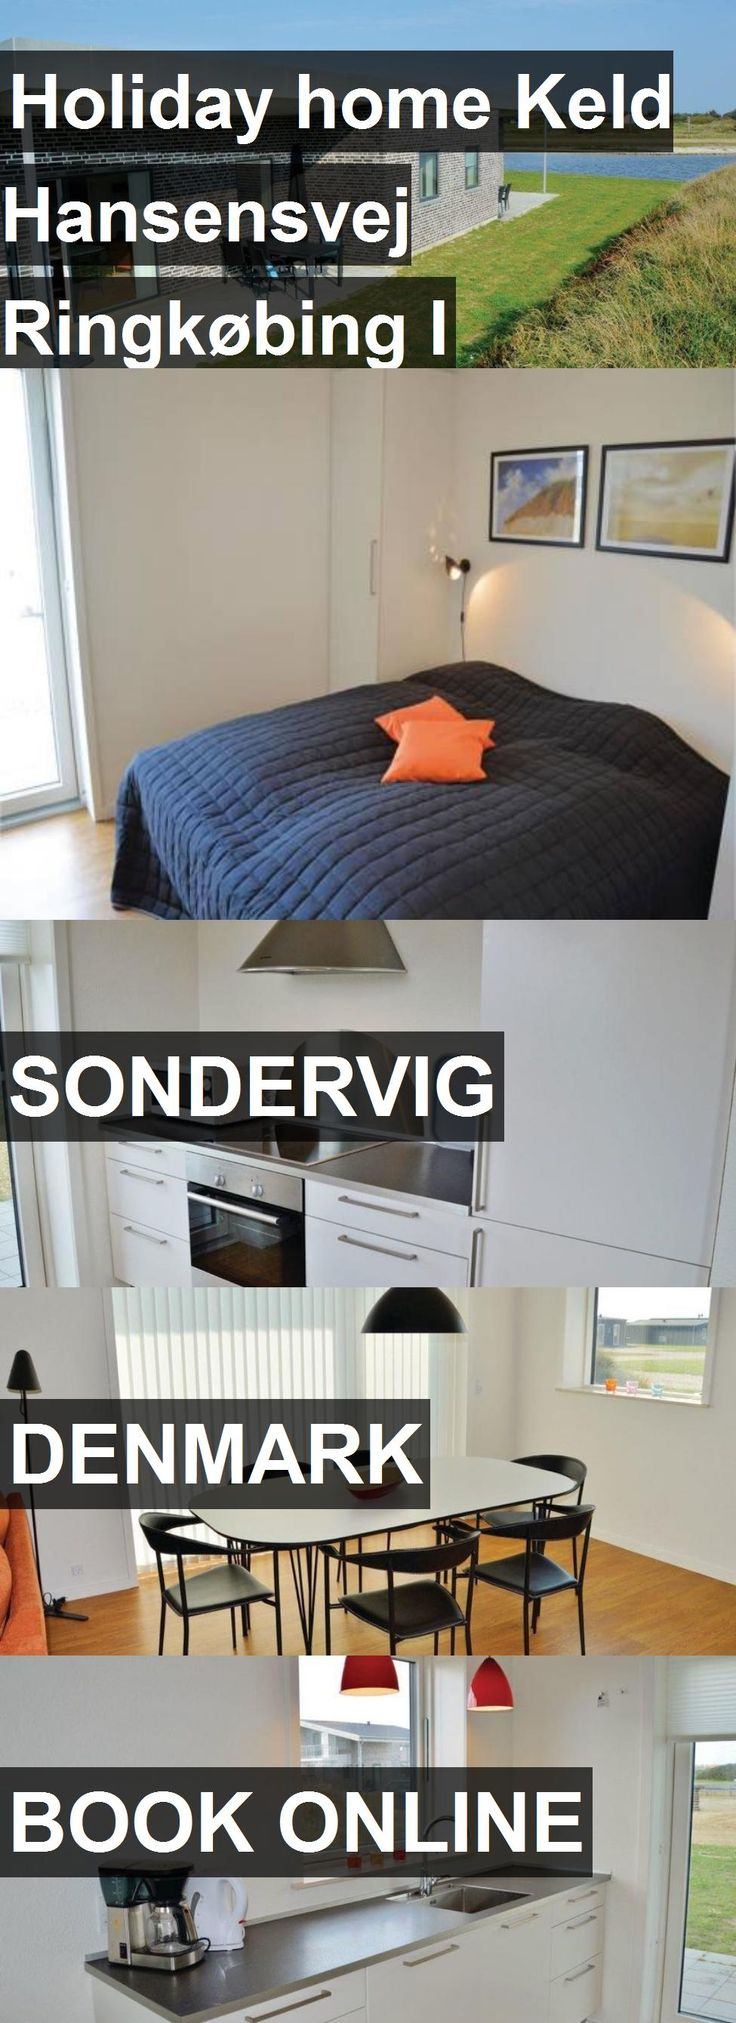 Hotel Holiday home Keld Hansensvej Ringkøbing I in Sondervig, Denmark. For more information, photos, reviews and best prices please follow the link. #Denmark #Sondervig #travel #vacation #hotel